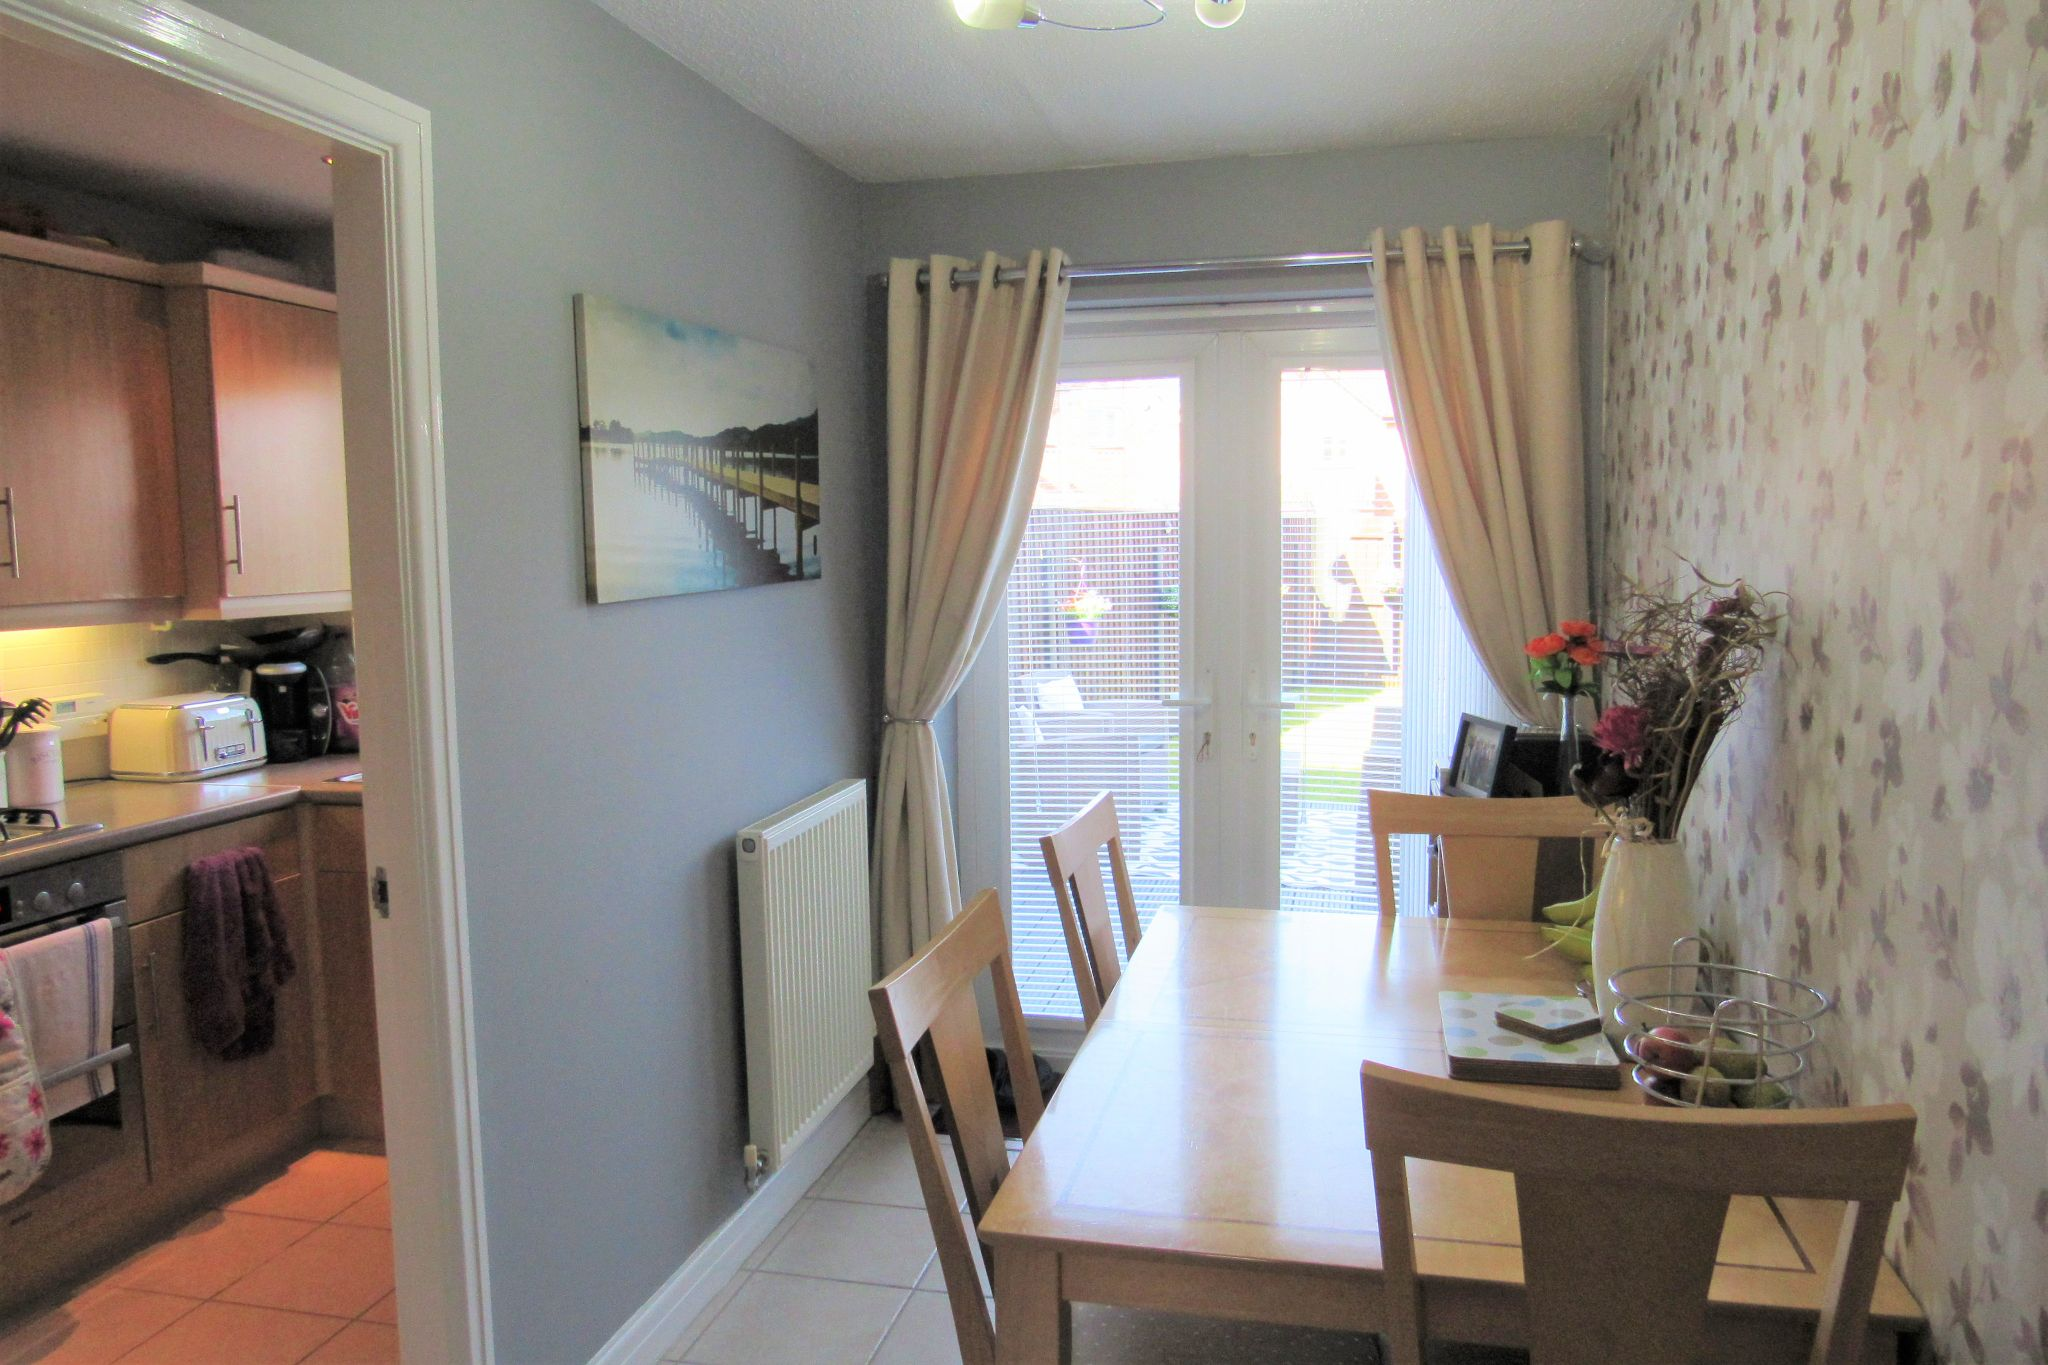 2 bedroom semi-detached house SSTC in Manchester - Photograph 8.